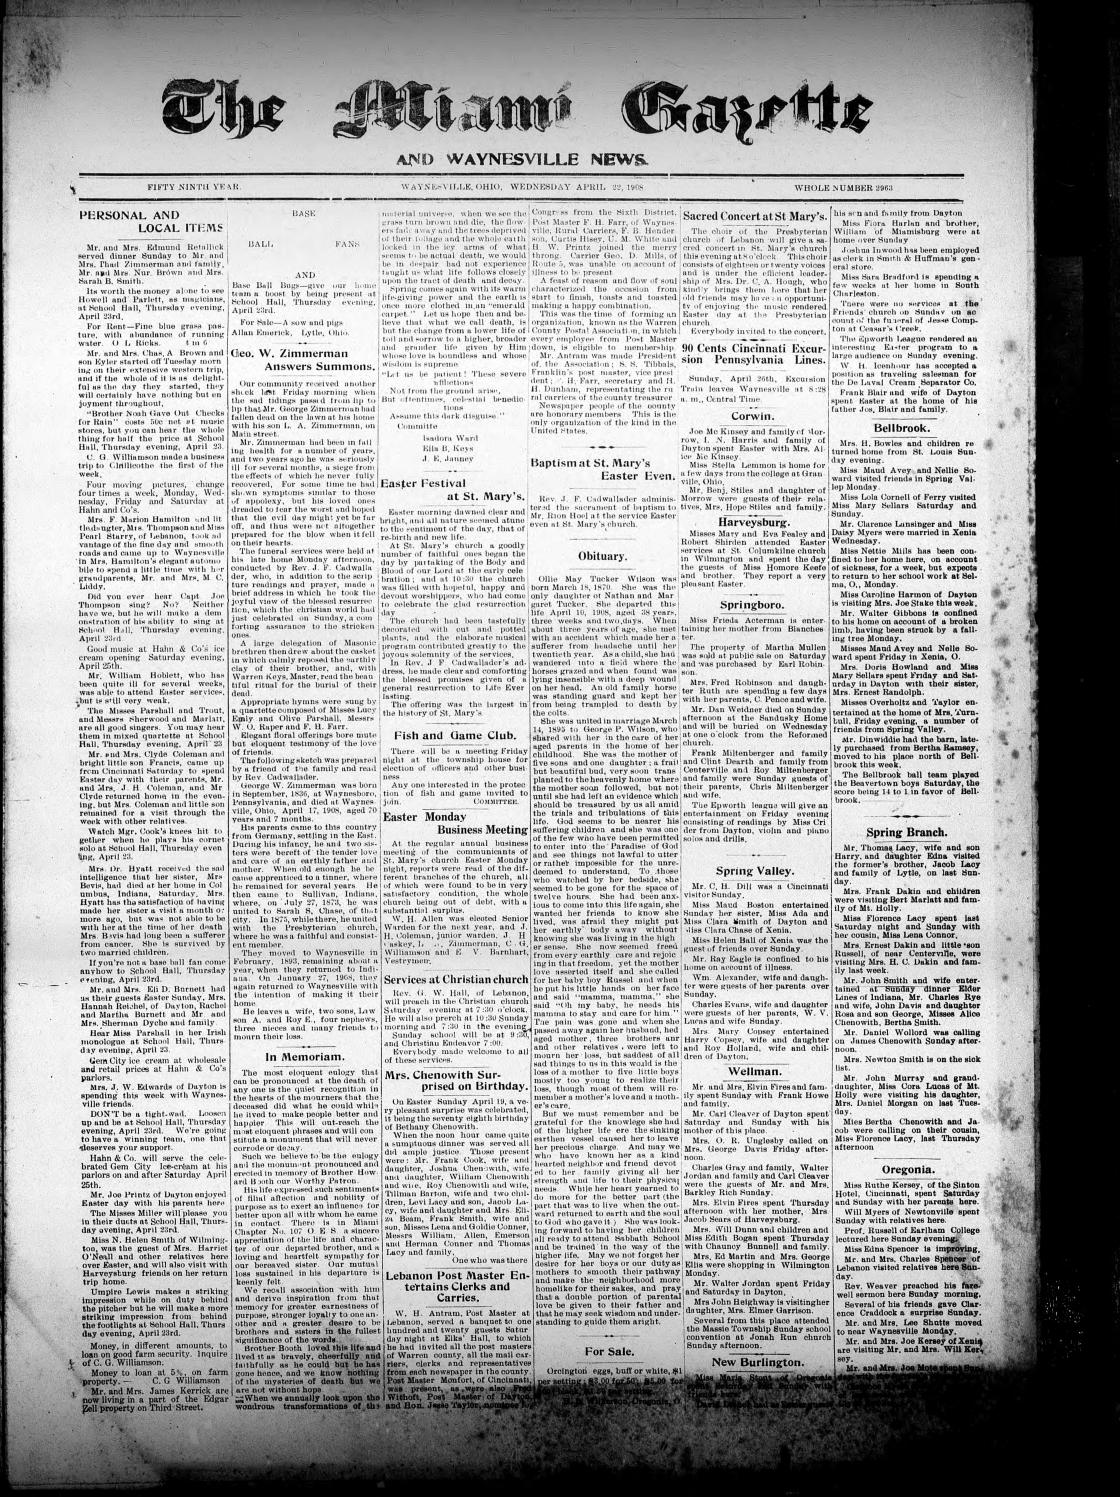 Miami Gazette April 22 1908 October 14 1908 by marylcook